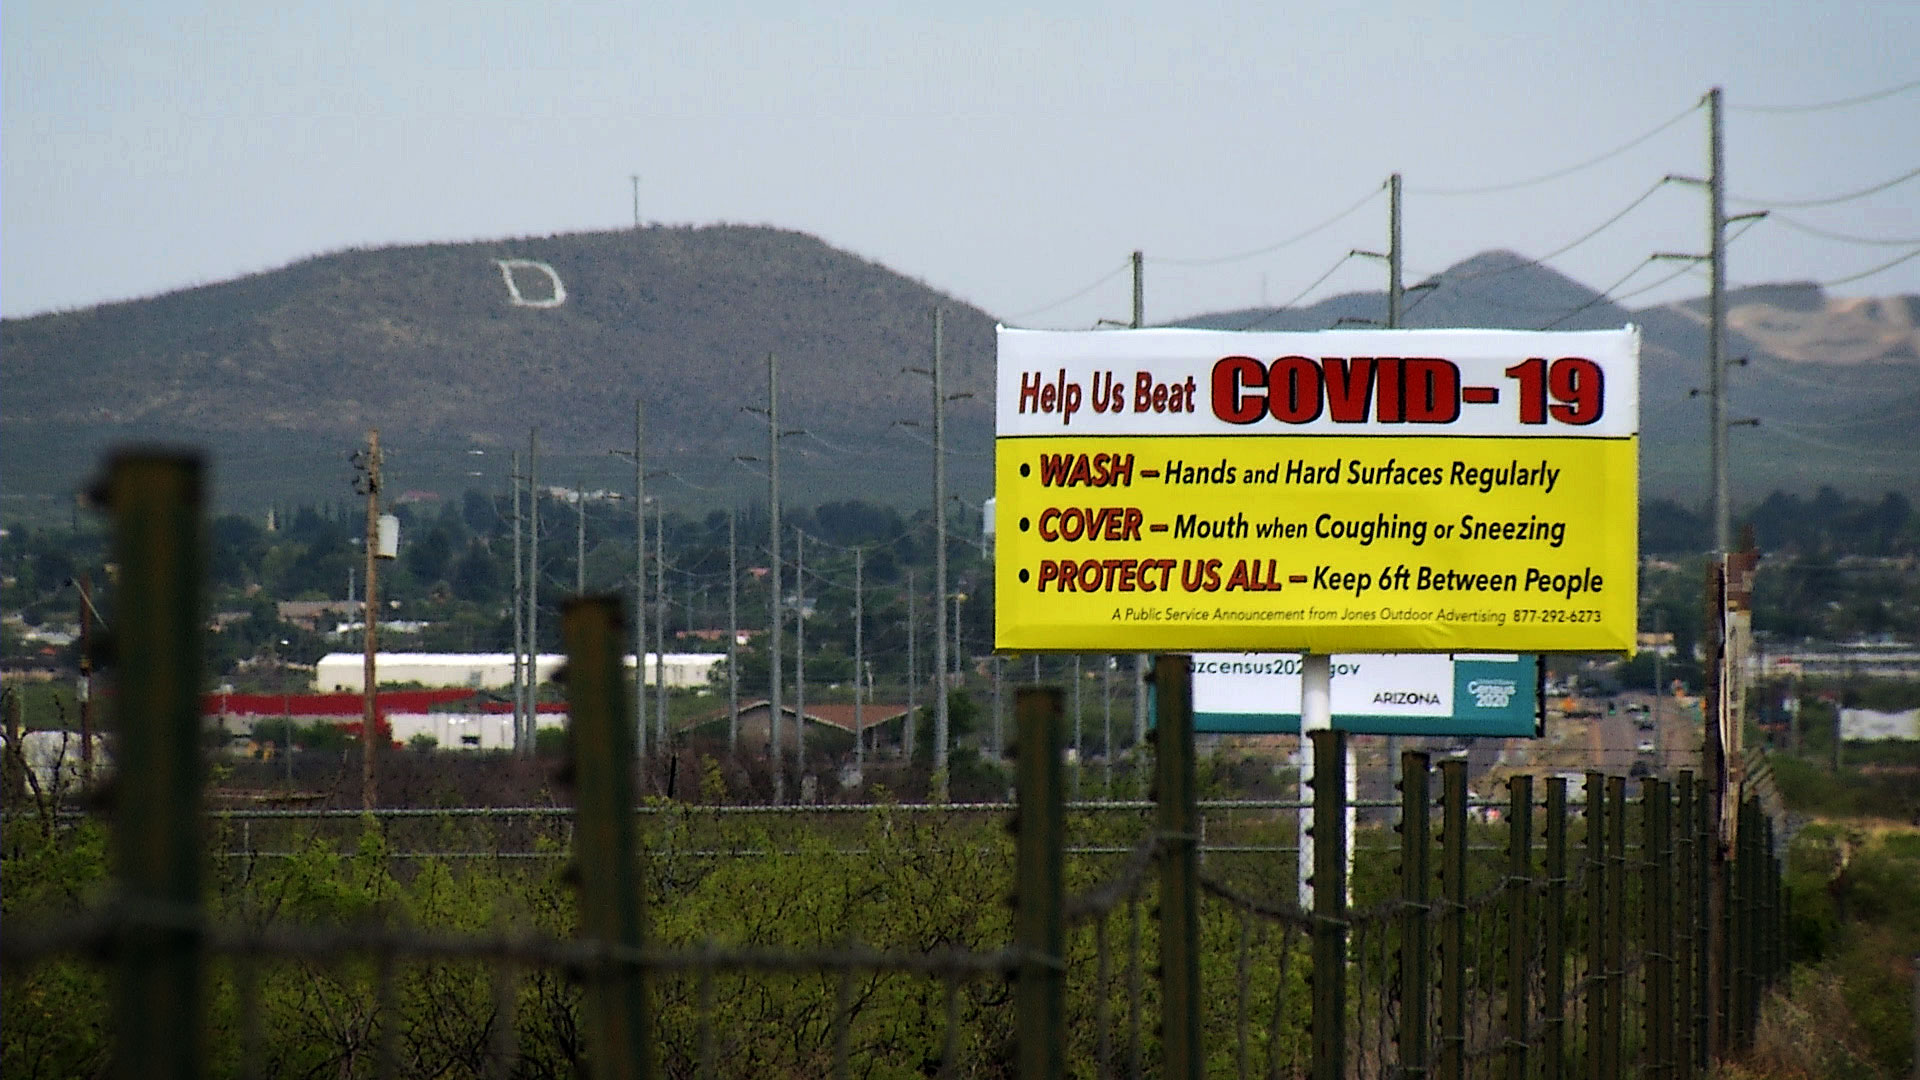 A sign urging protective measures against the novel coronavirus along a road in Douglas, Arizona. April 2020.